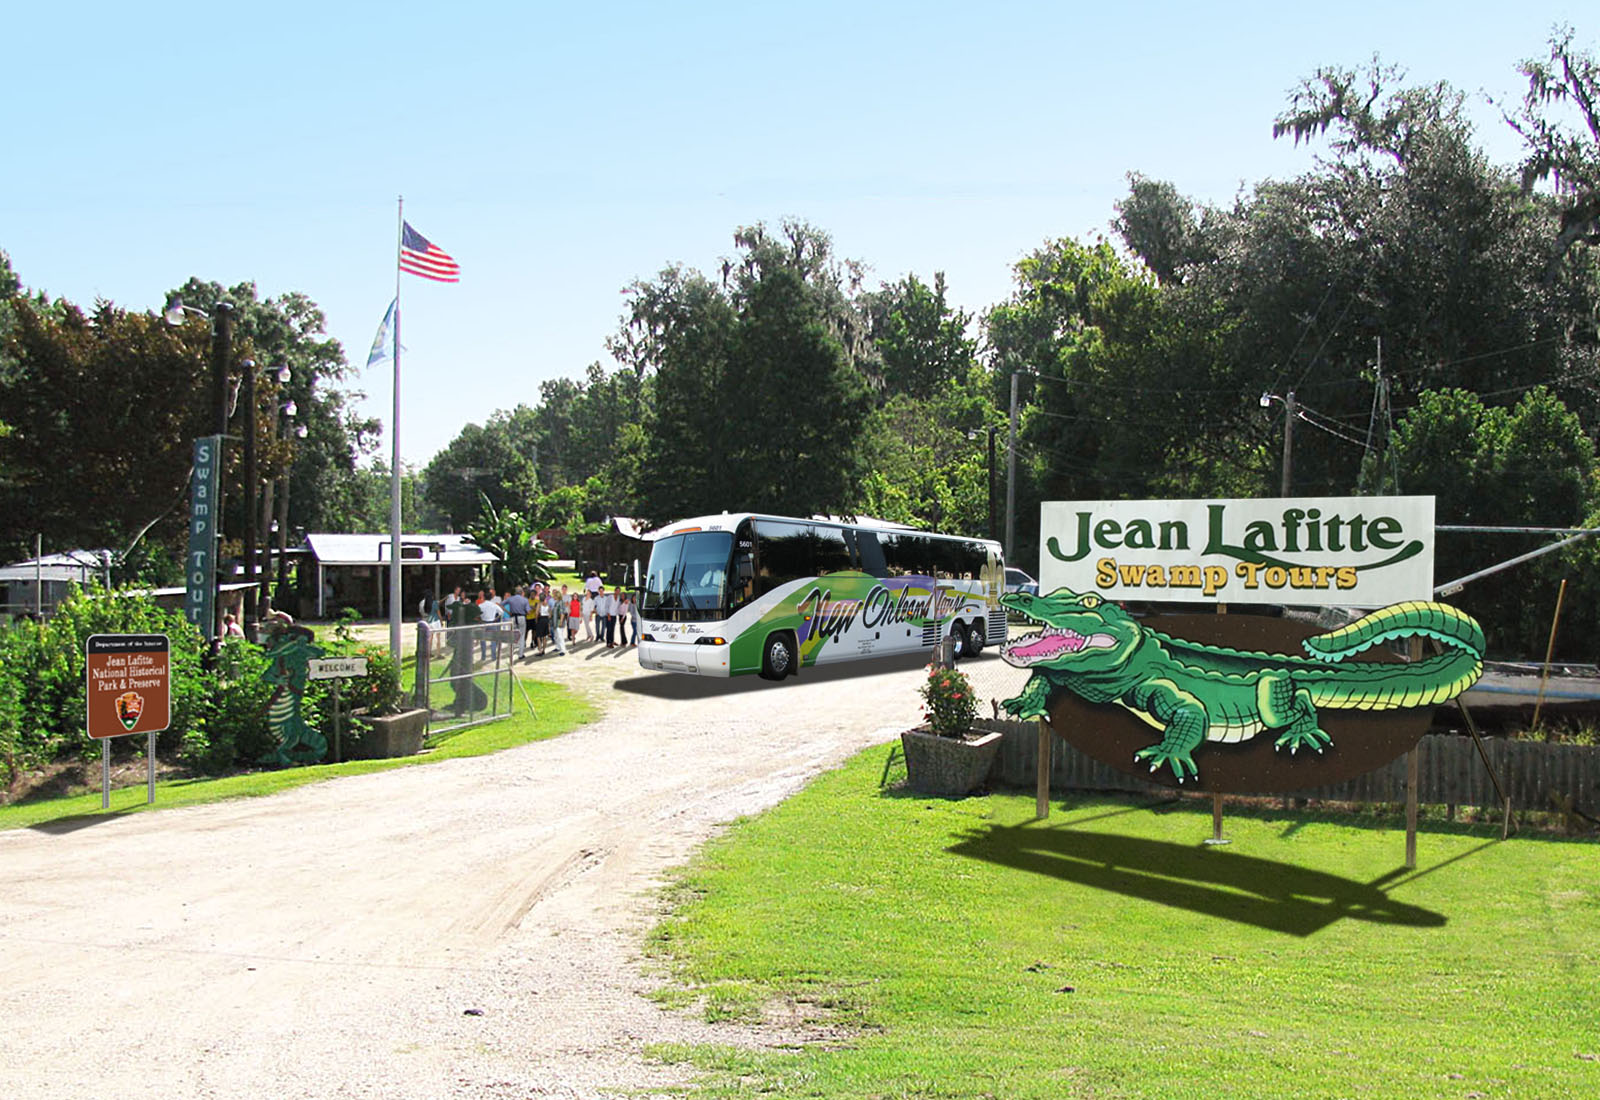 Why We Are The Best New Orleans Swamp Tour | Jean Lafitte